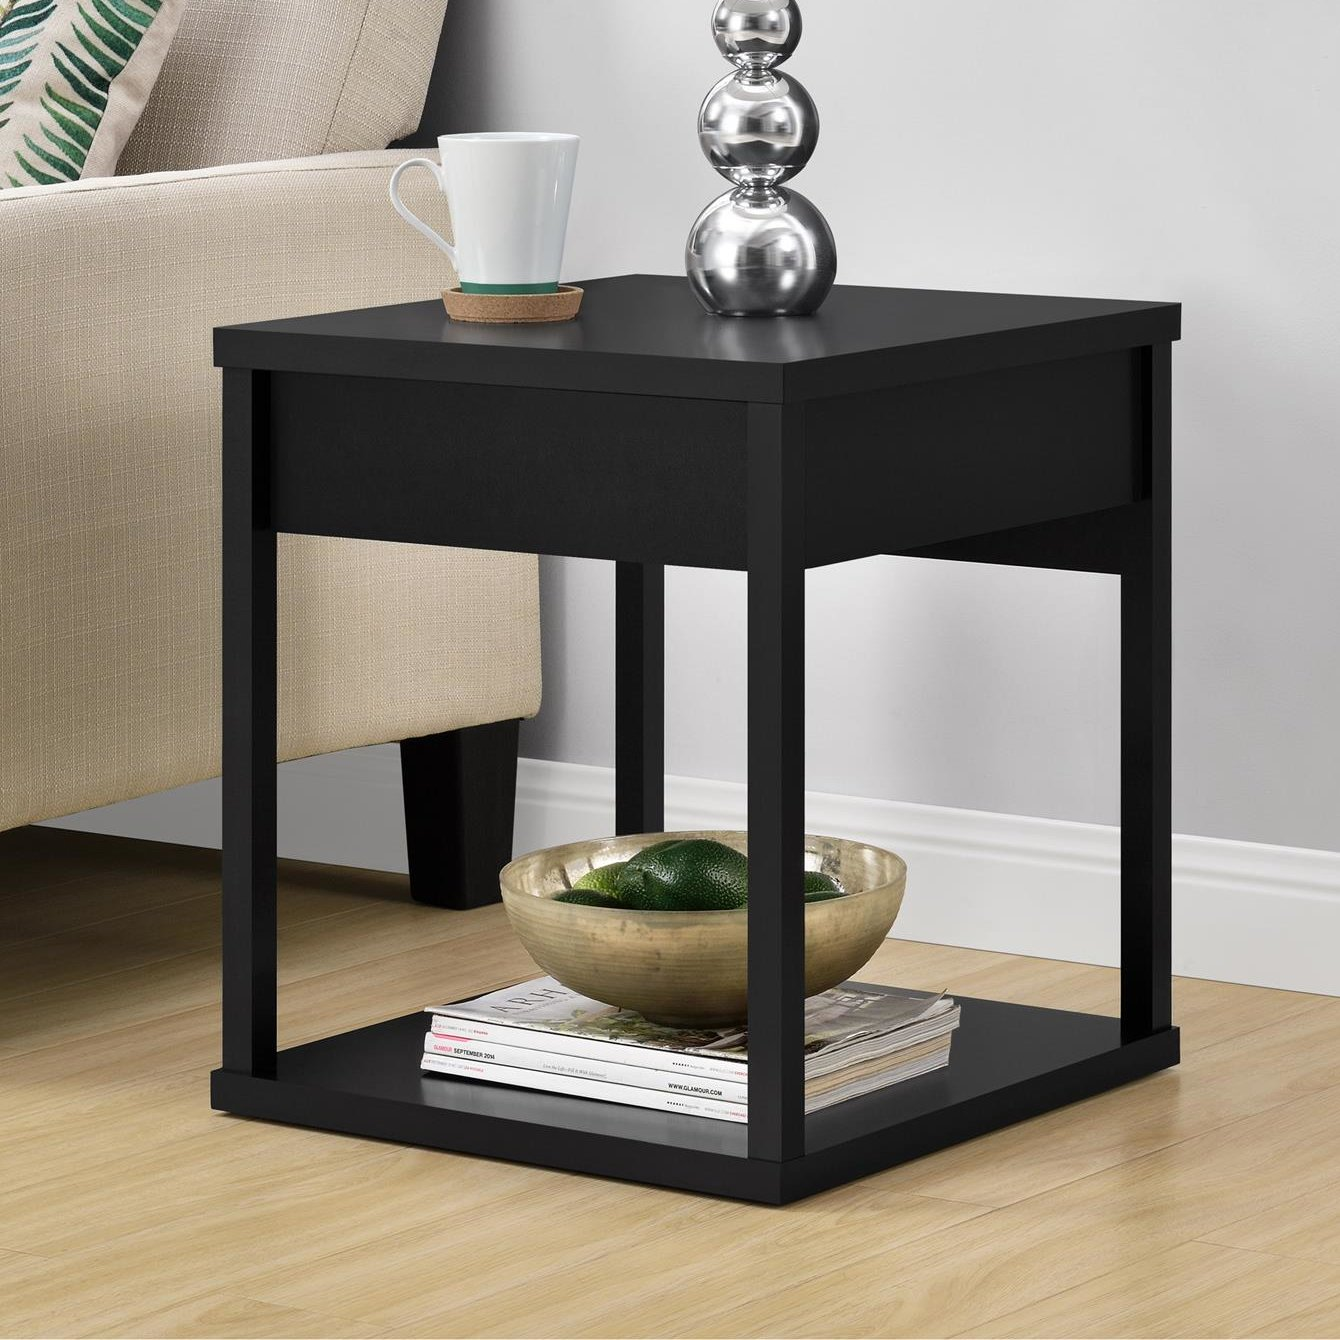 inch high end table annsville low height accent rustic lamps wood and glass top coffee evans head cherry console pub battery pack for lamp pottery barn chest entryway powered desk